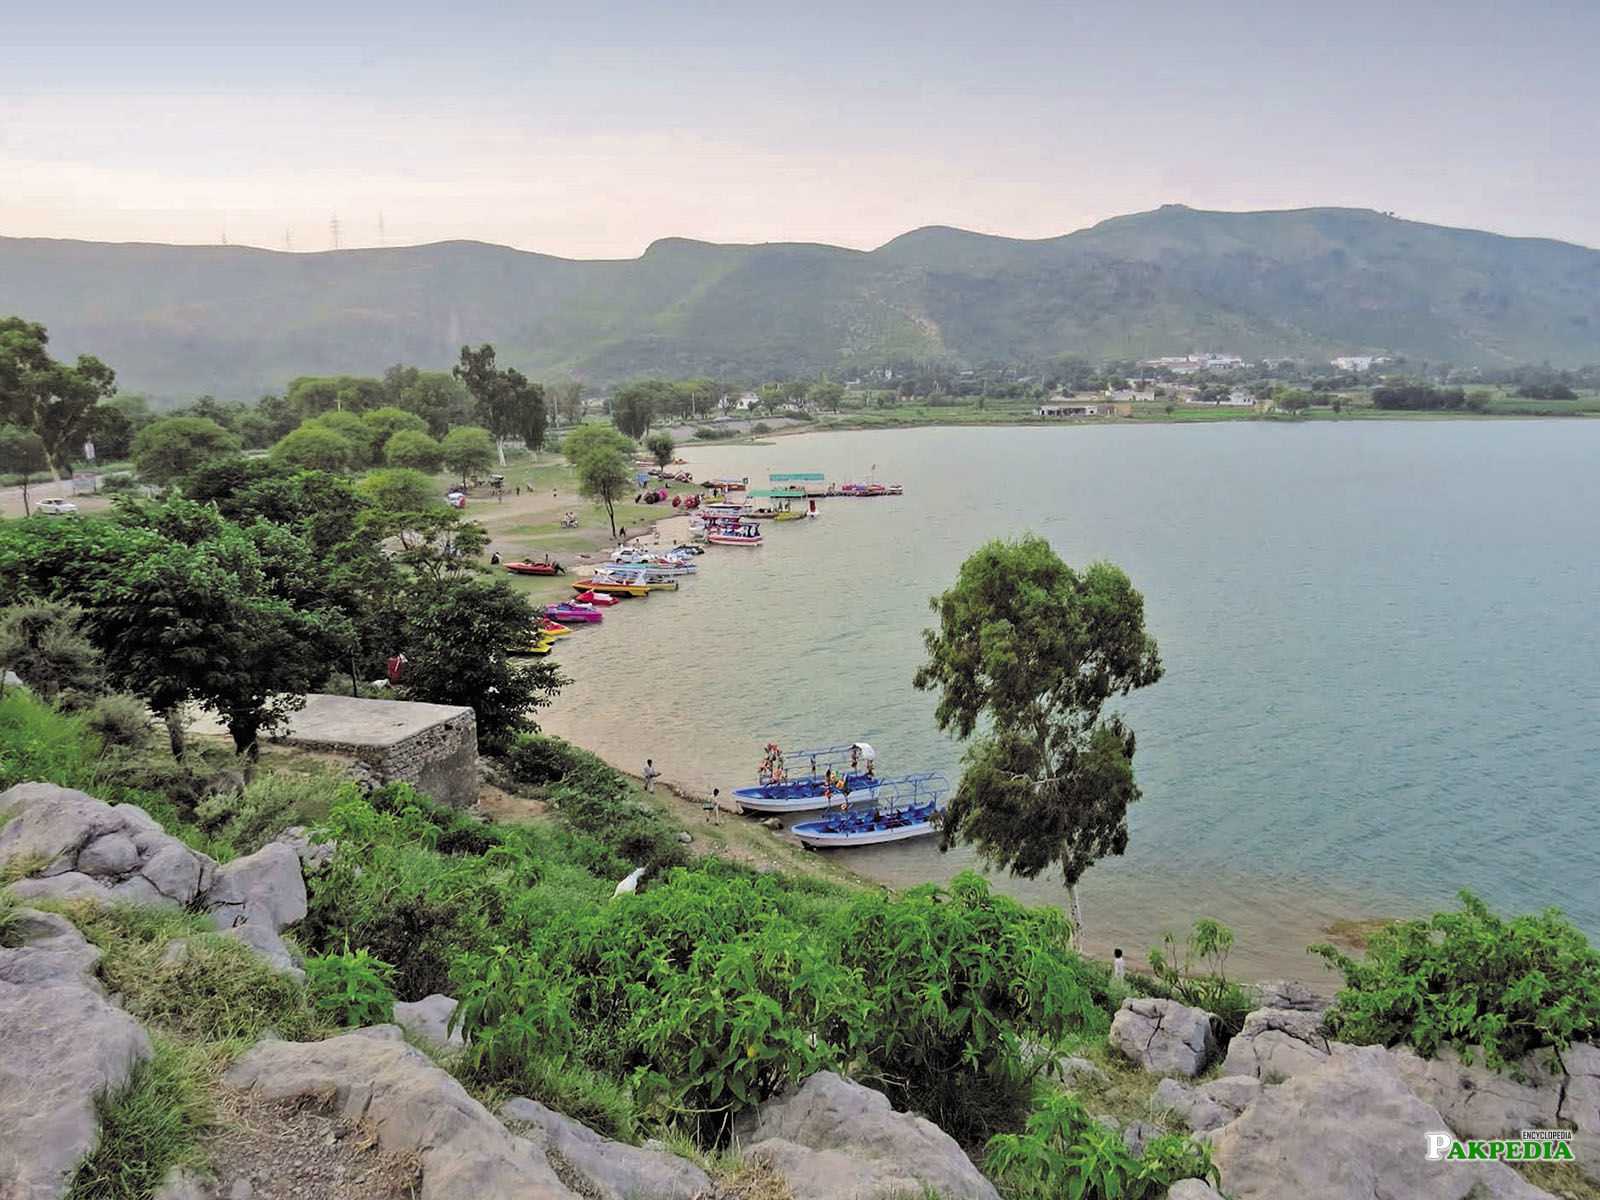 Khanpur is the best place for holidays